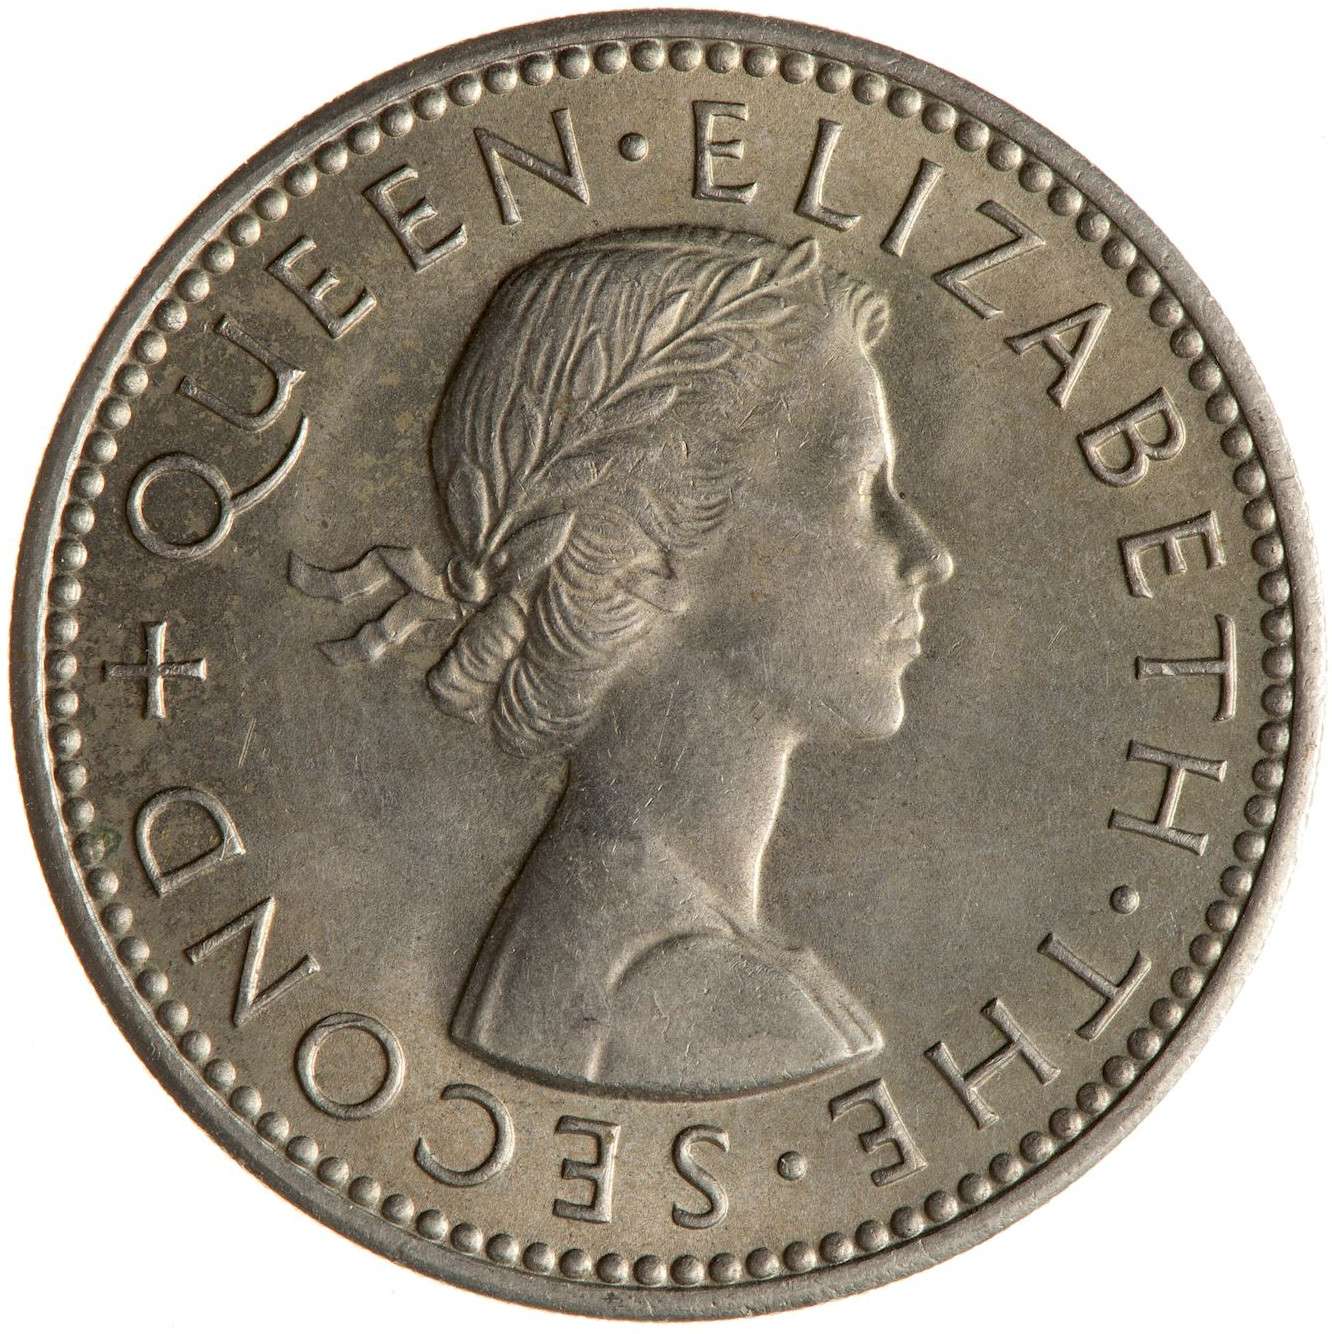 Shilling 1965: Photo Coin - 1 Shilling, New Zealand, 1965